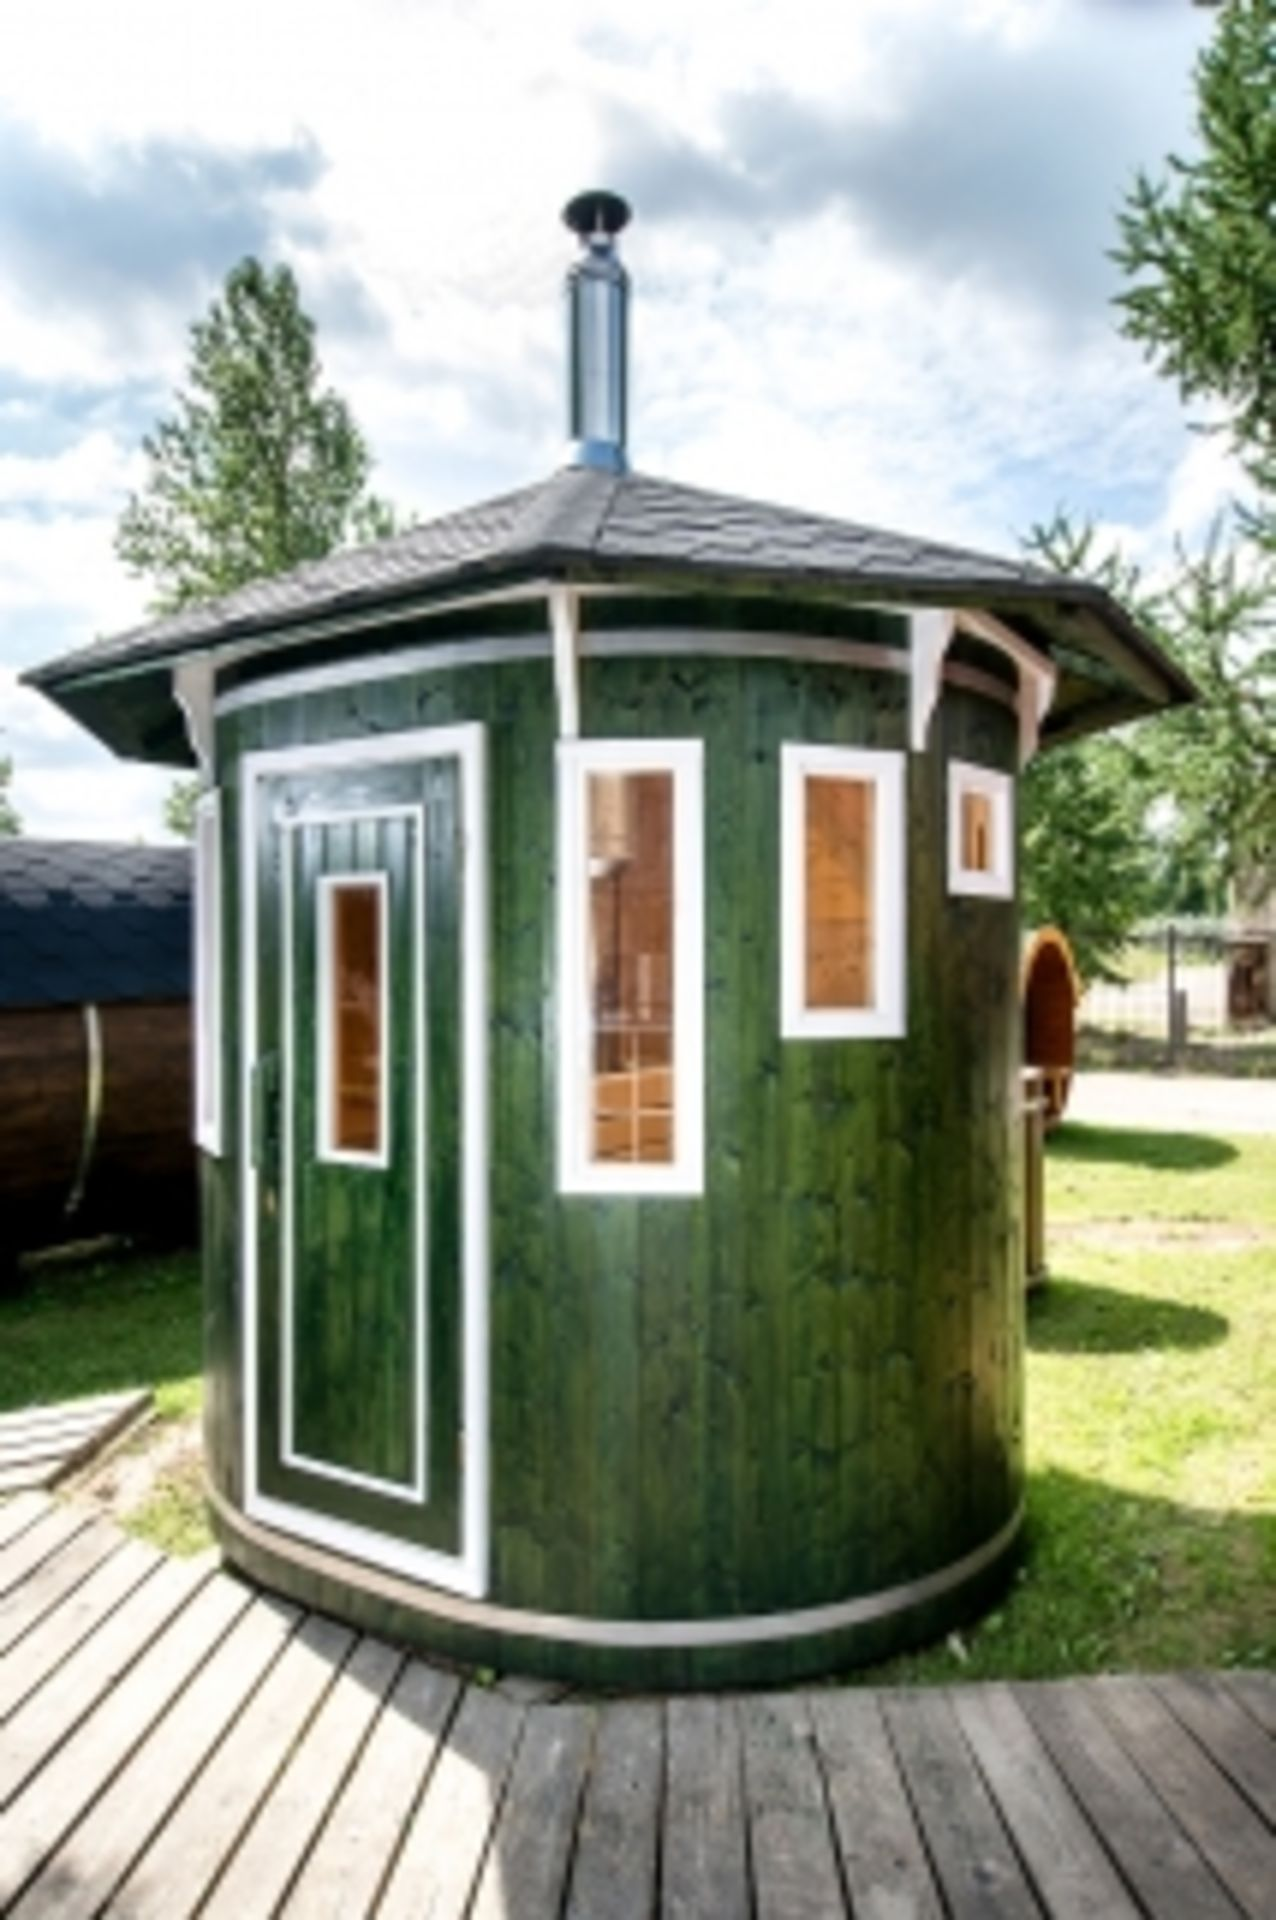 Lot 19010 - + VAT Brand New Vertical Sauna Made From Spruce Wood - Oval Shaped Sauna - Roof Covered With